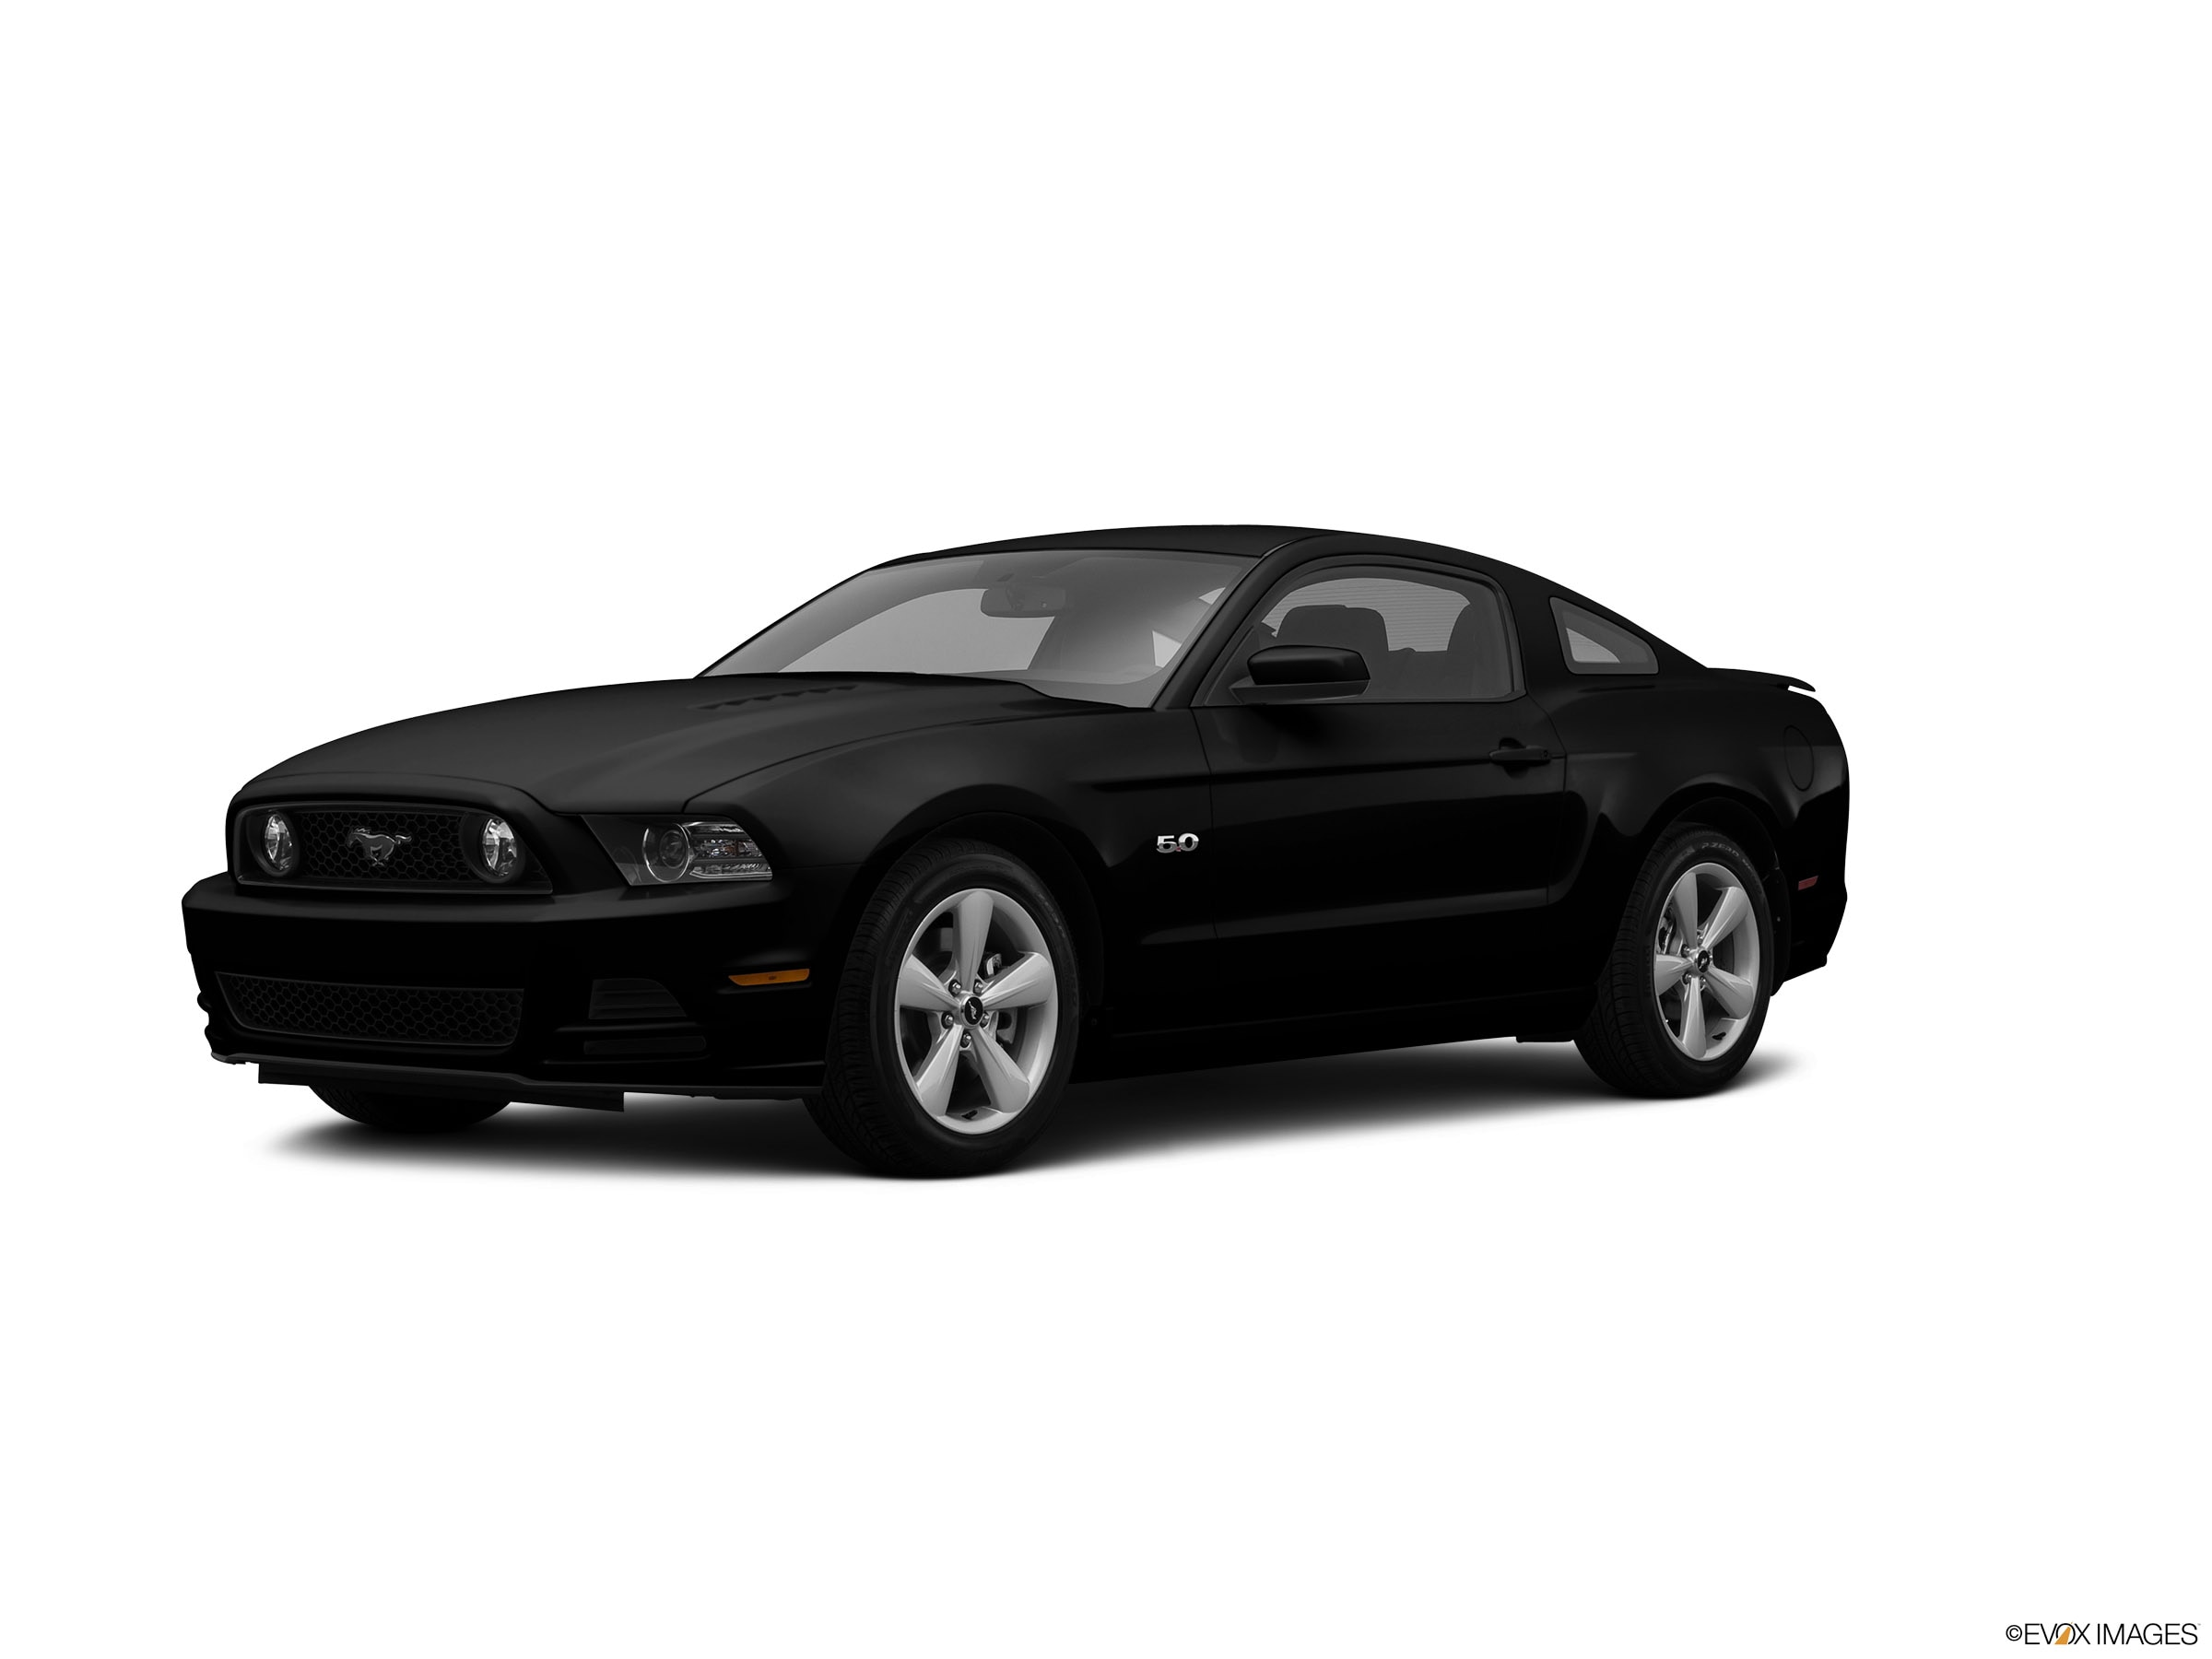 2014 Ford Mustang GT Premium Sporty Car